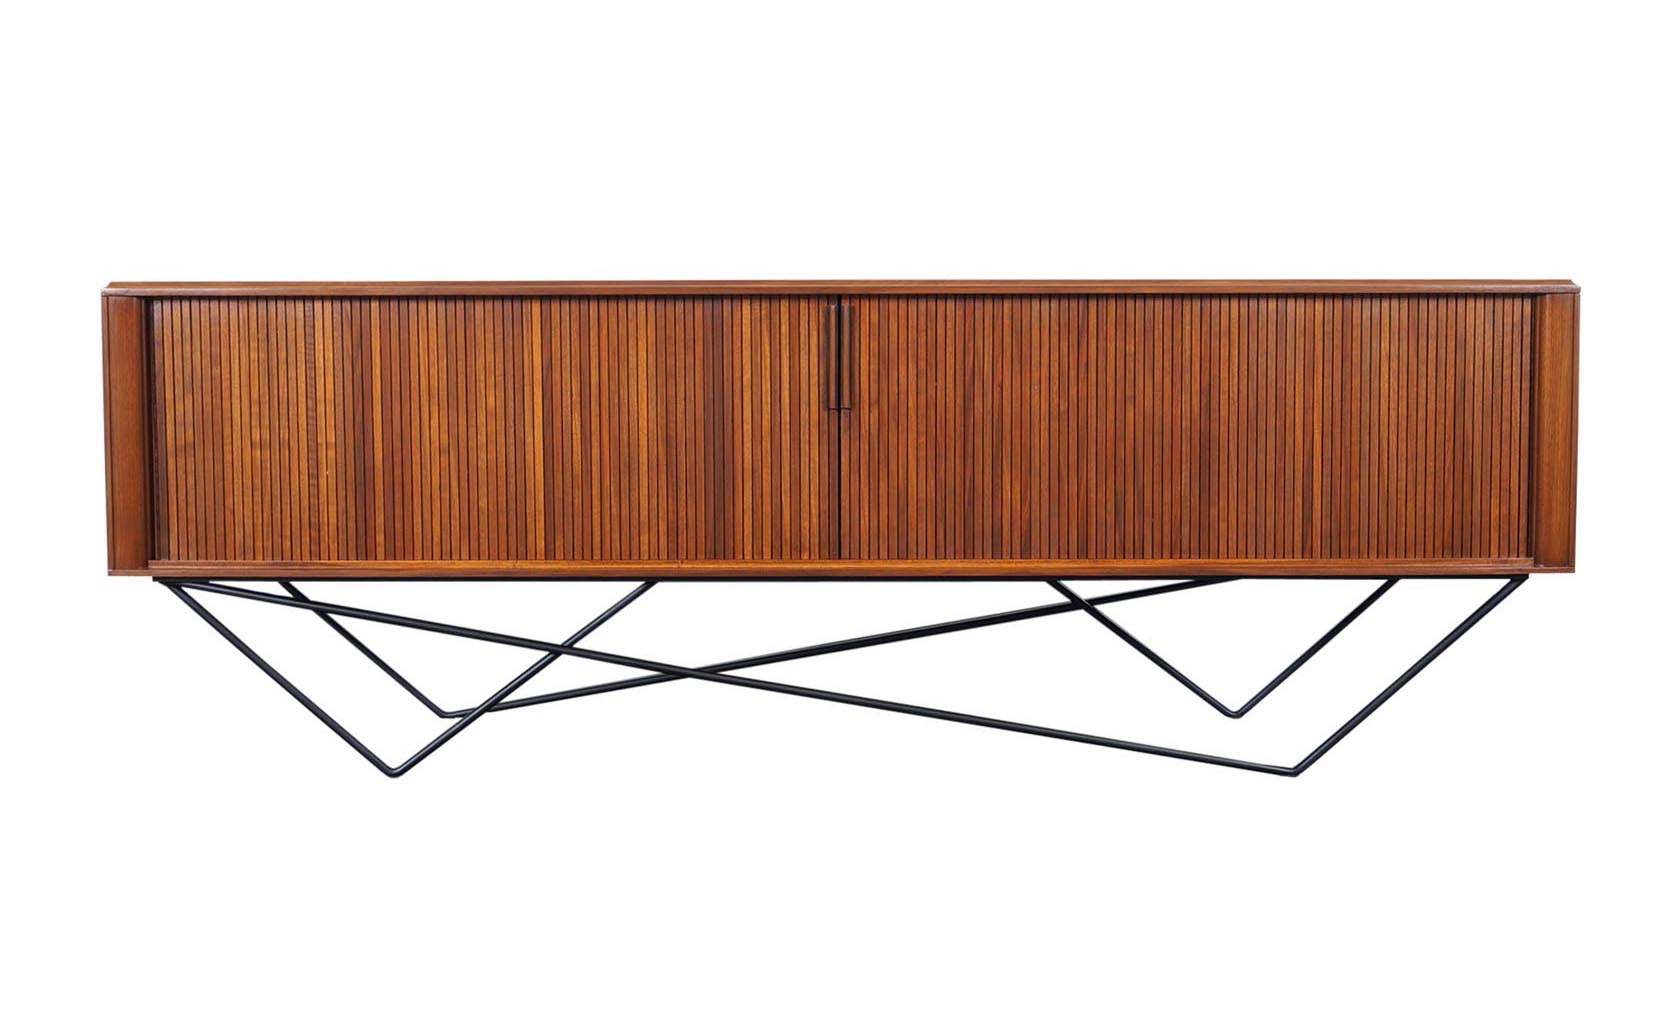 Architectural Walnut Tambour Door Credenza